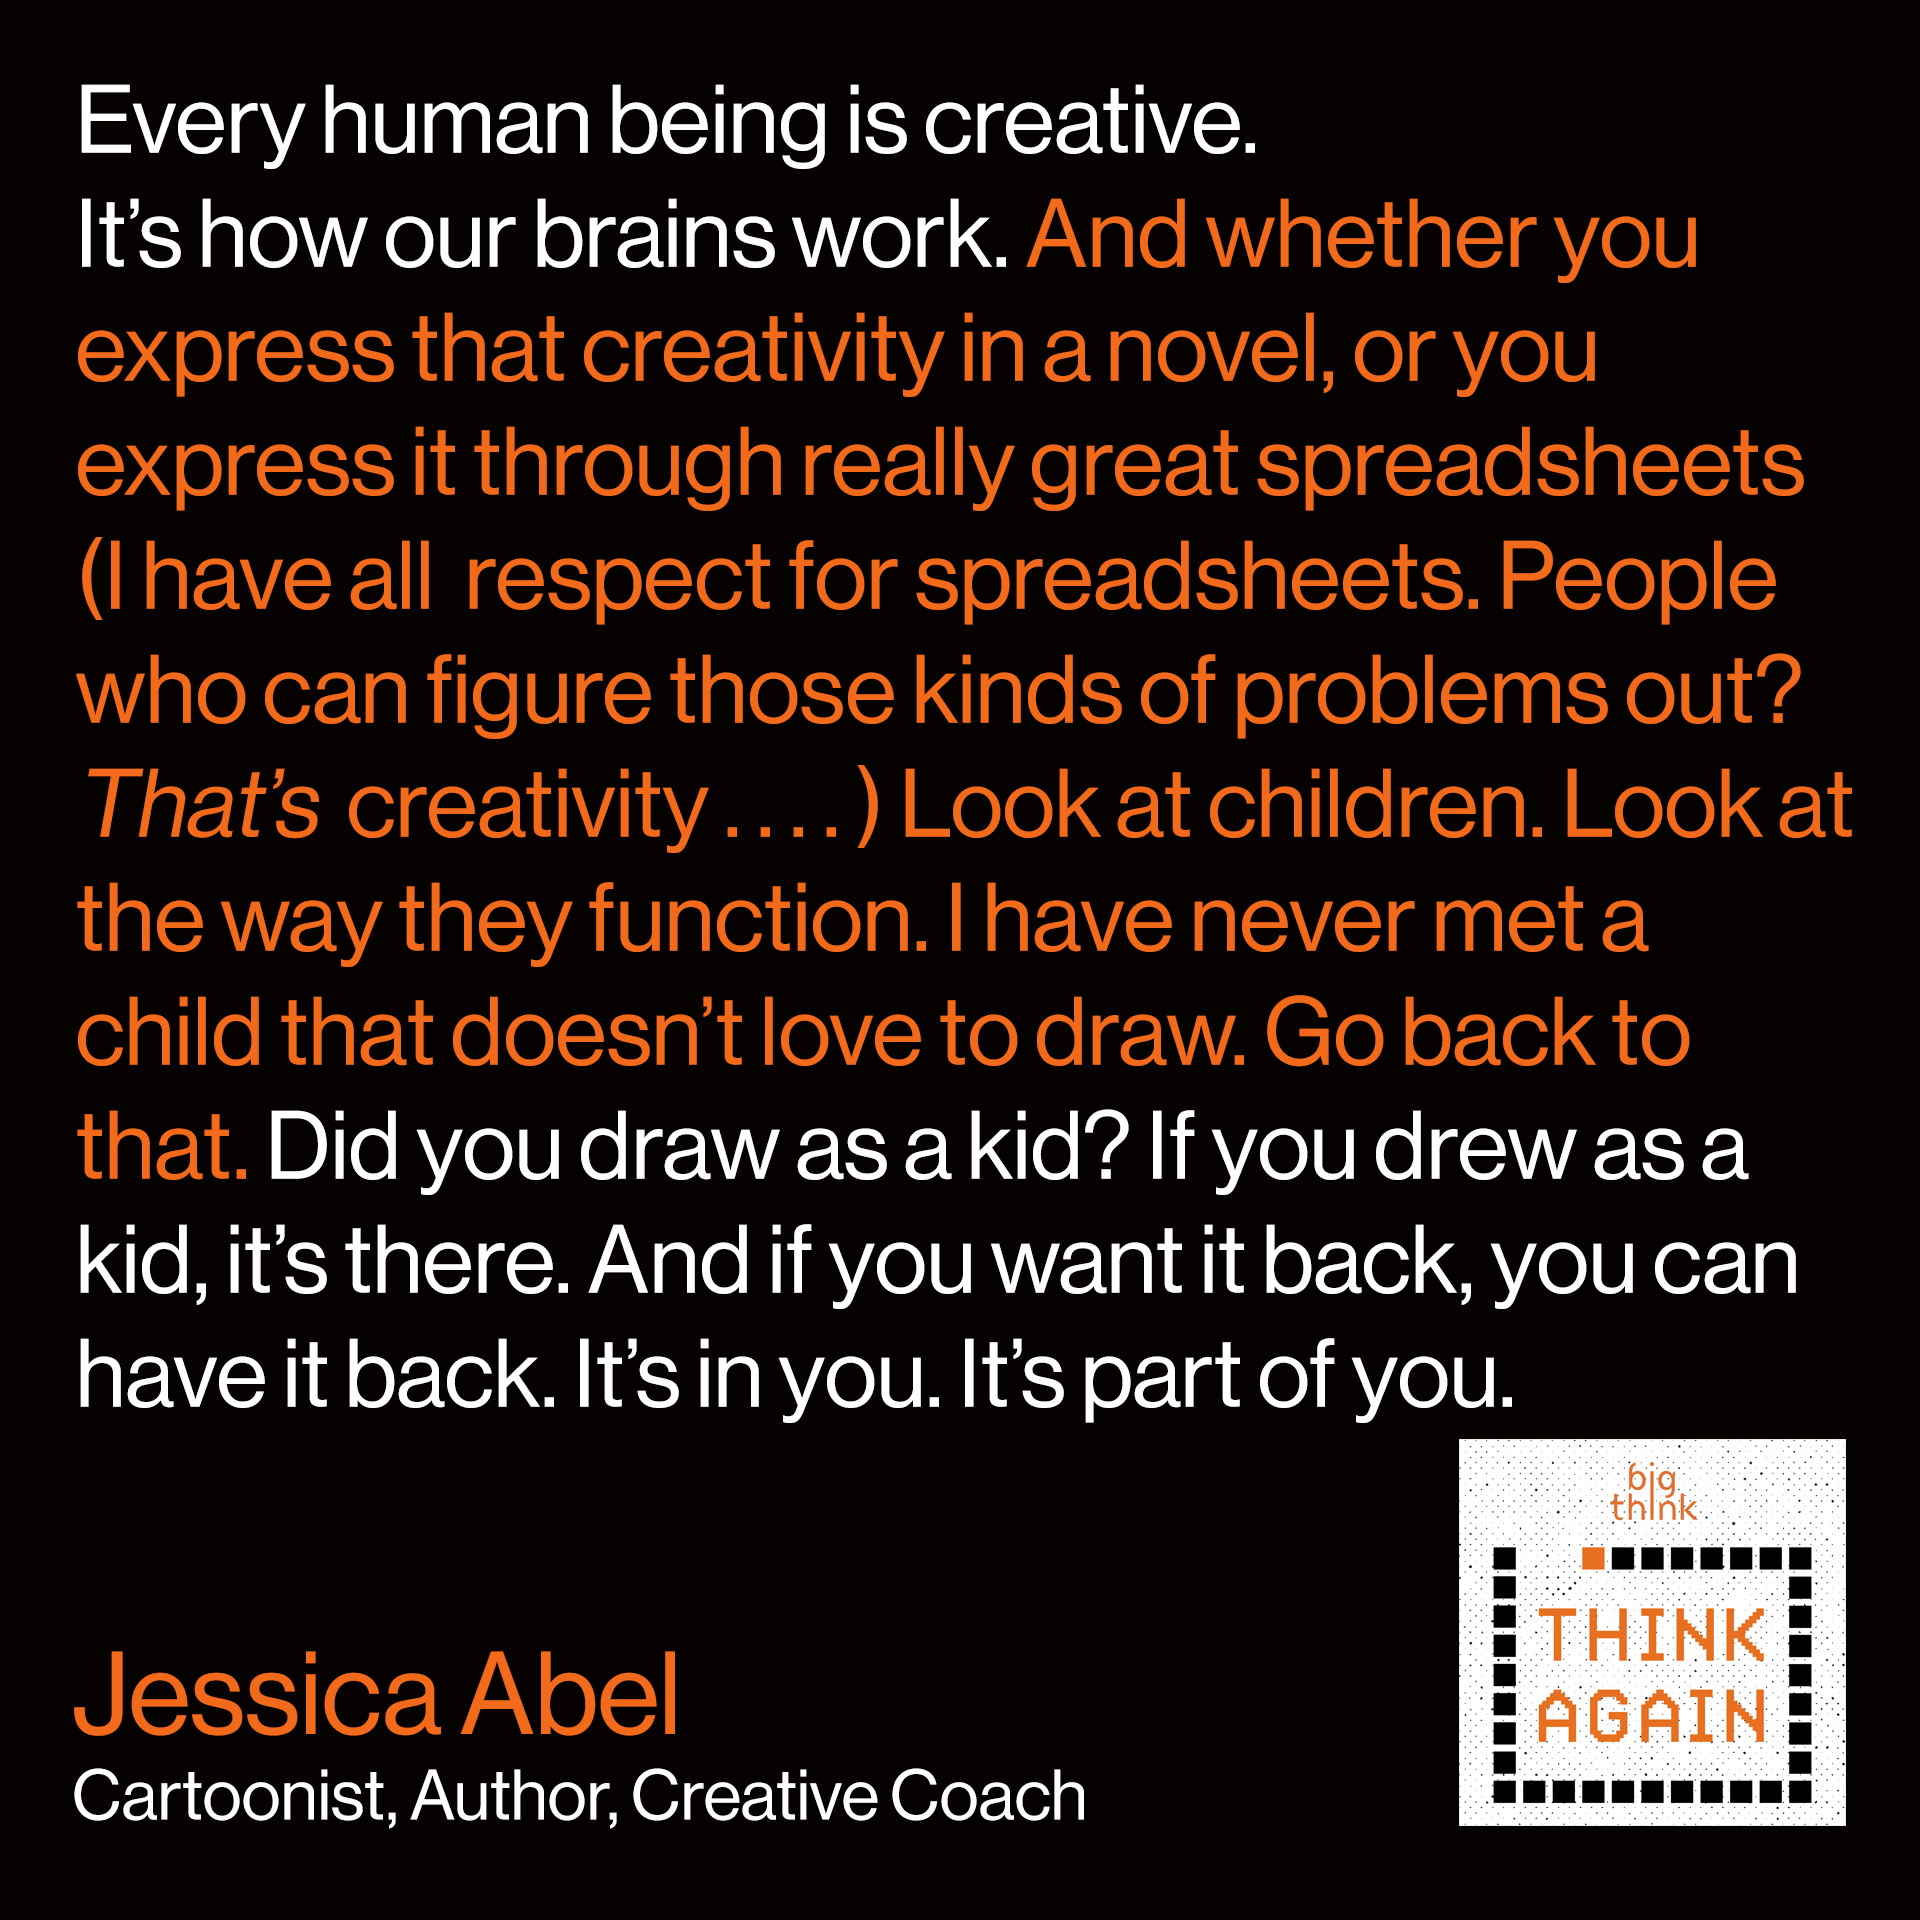 Jessica Abel Quote: I think that every human being is creative. It's how our brains work. And whether you express that creativity in a novel, or you express it through really great spreadsheets (I have all respect for spreadsheets. People who can figure those kinds of problems out? That is creativity) . . . . Look at children. Look at the way they function. I have never met a child that doesn't love to draw. Go back to that. Did you draw as a kid? If you drew as a kid, it's there. And if you want it back, you can have it back. It's in you. It's part of you.